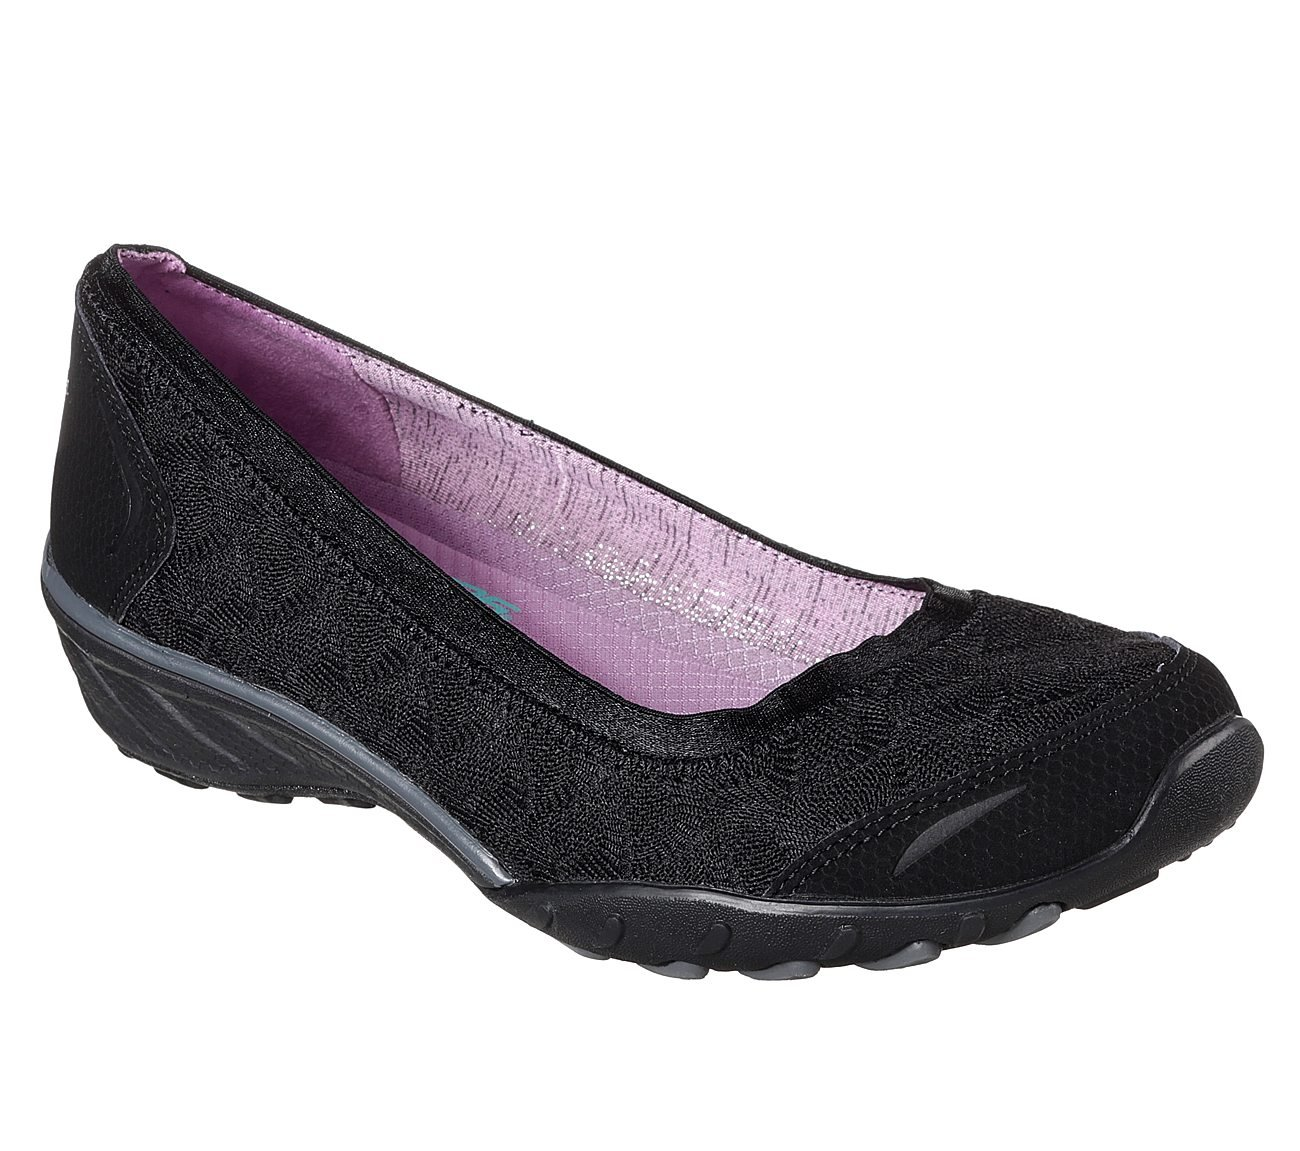 Skechers Womens Savvy - Play B074KHP4XD The Game Wedge Pump B074KHP4XD Play 9.5 B(M) US|Black fb326f